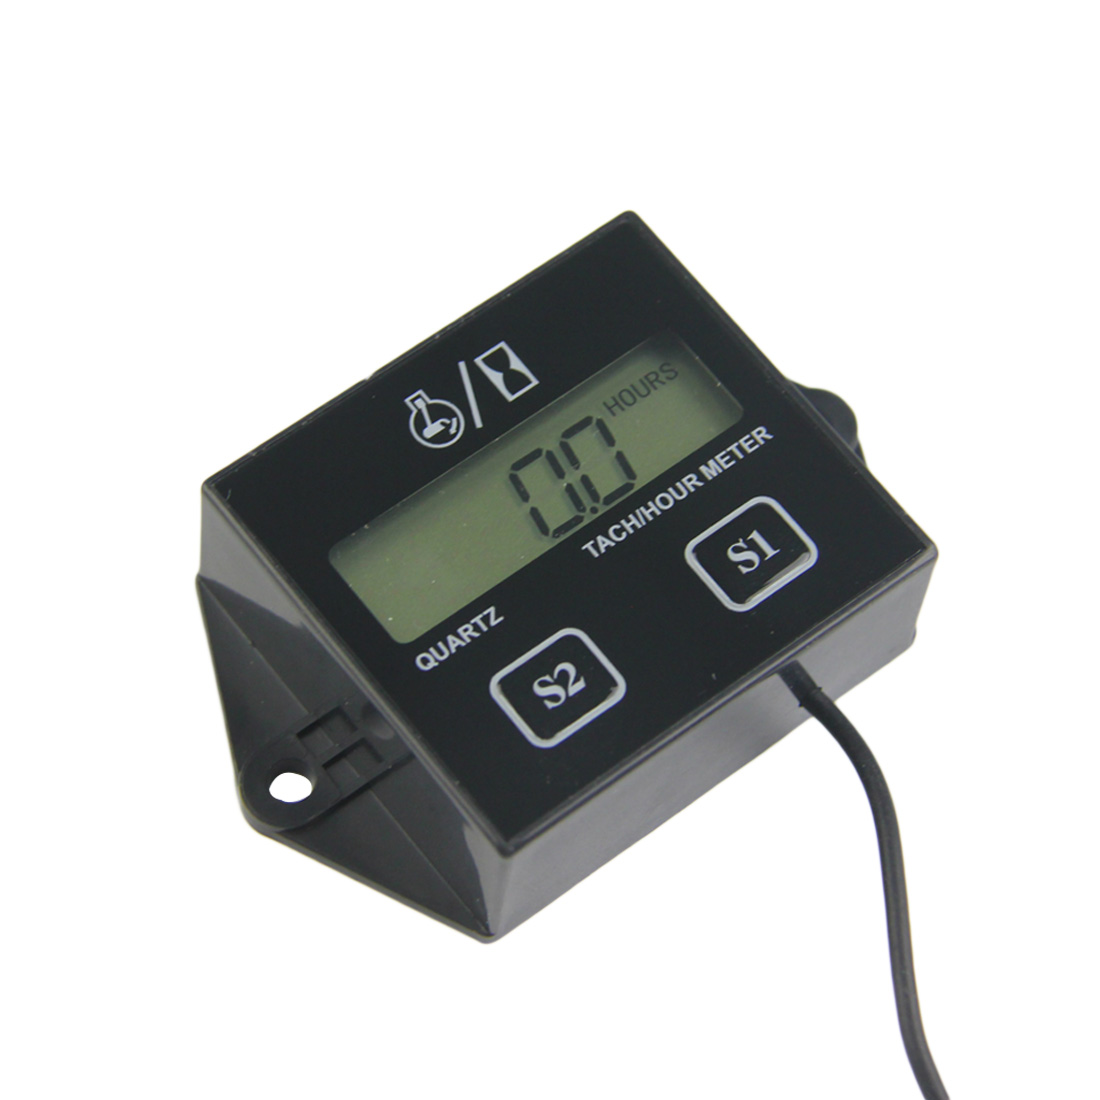 Engine Spark Tech Hour Meter Digital Engine Tachometer Gauge Inductive For Motorcycle Motor Stroke